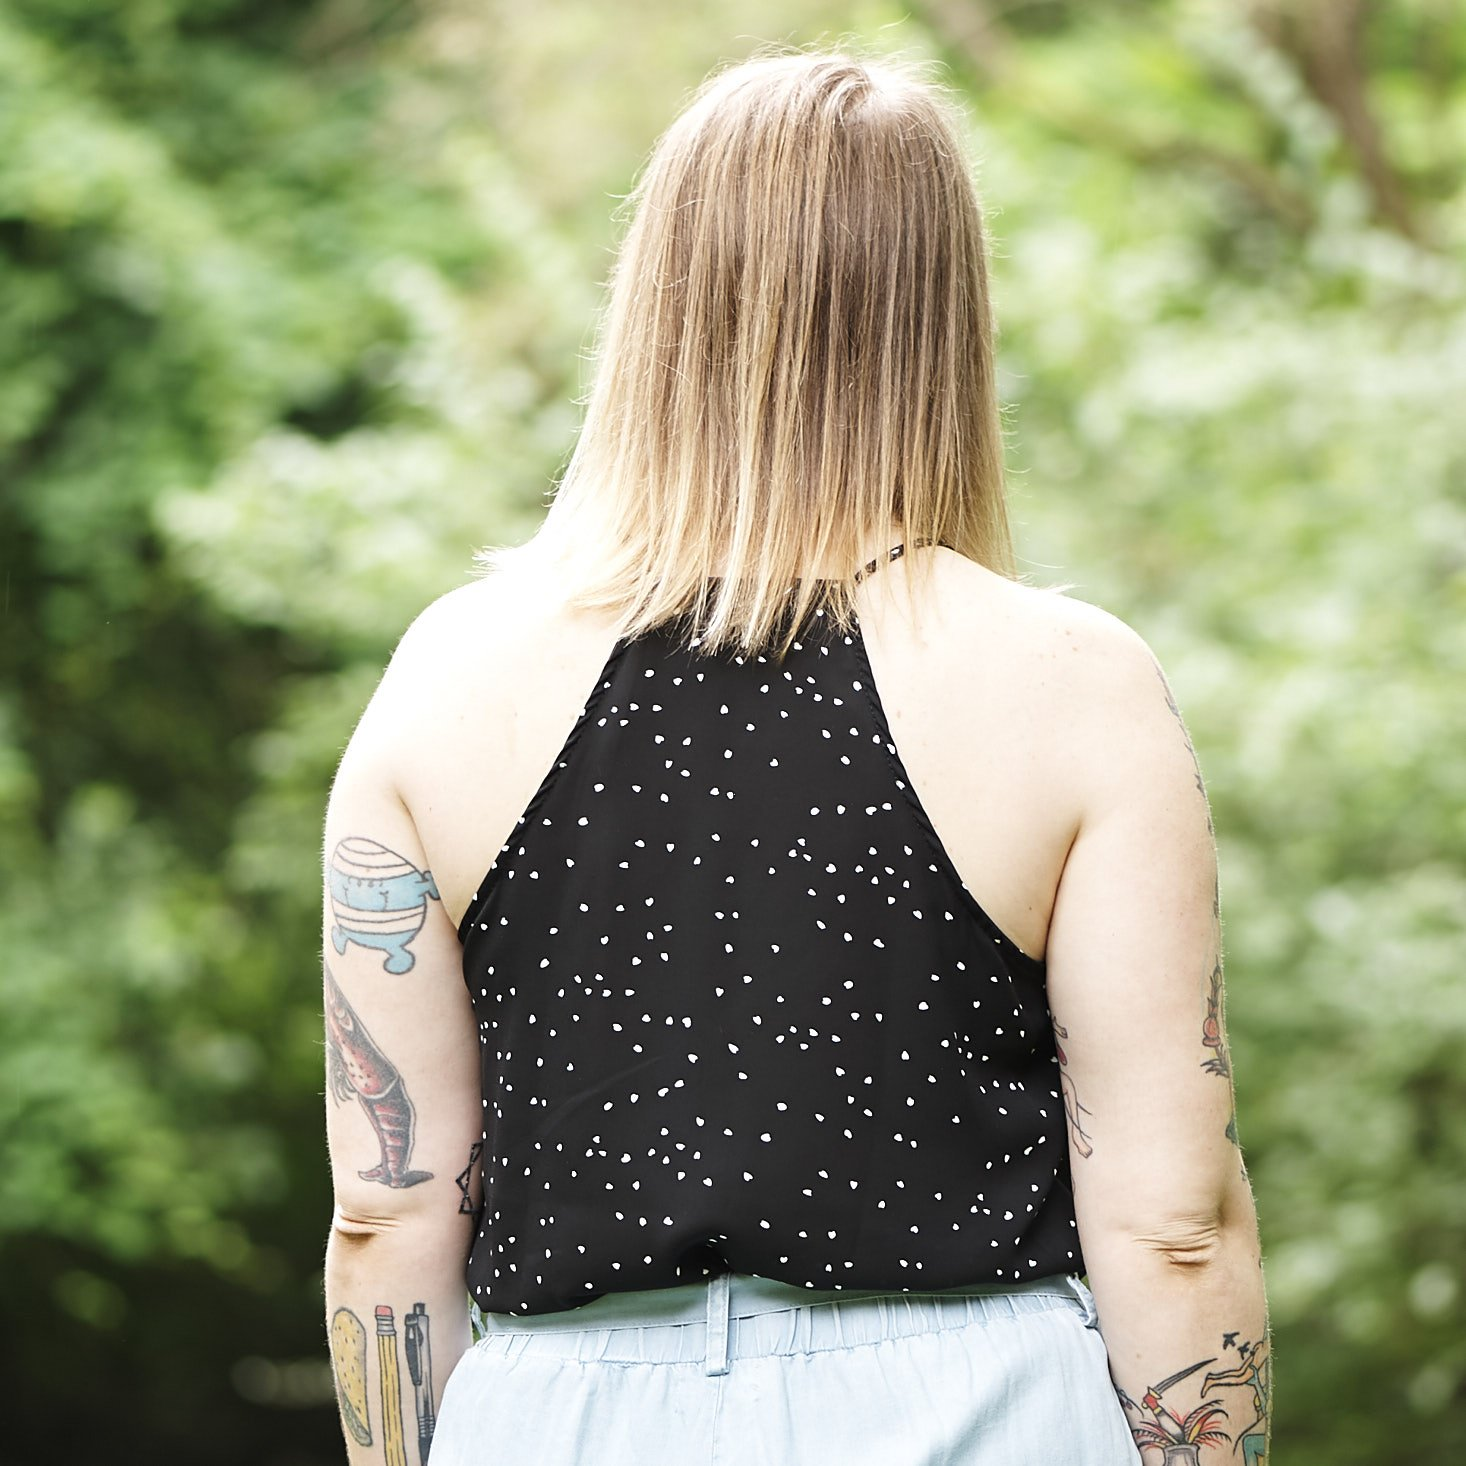 Close up of Marne wearing polka dot camisole - back